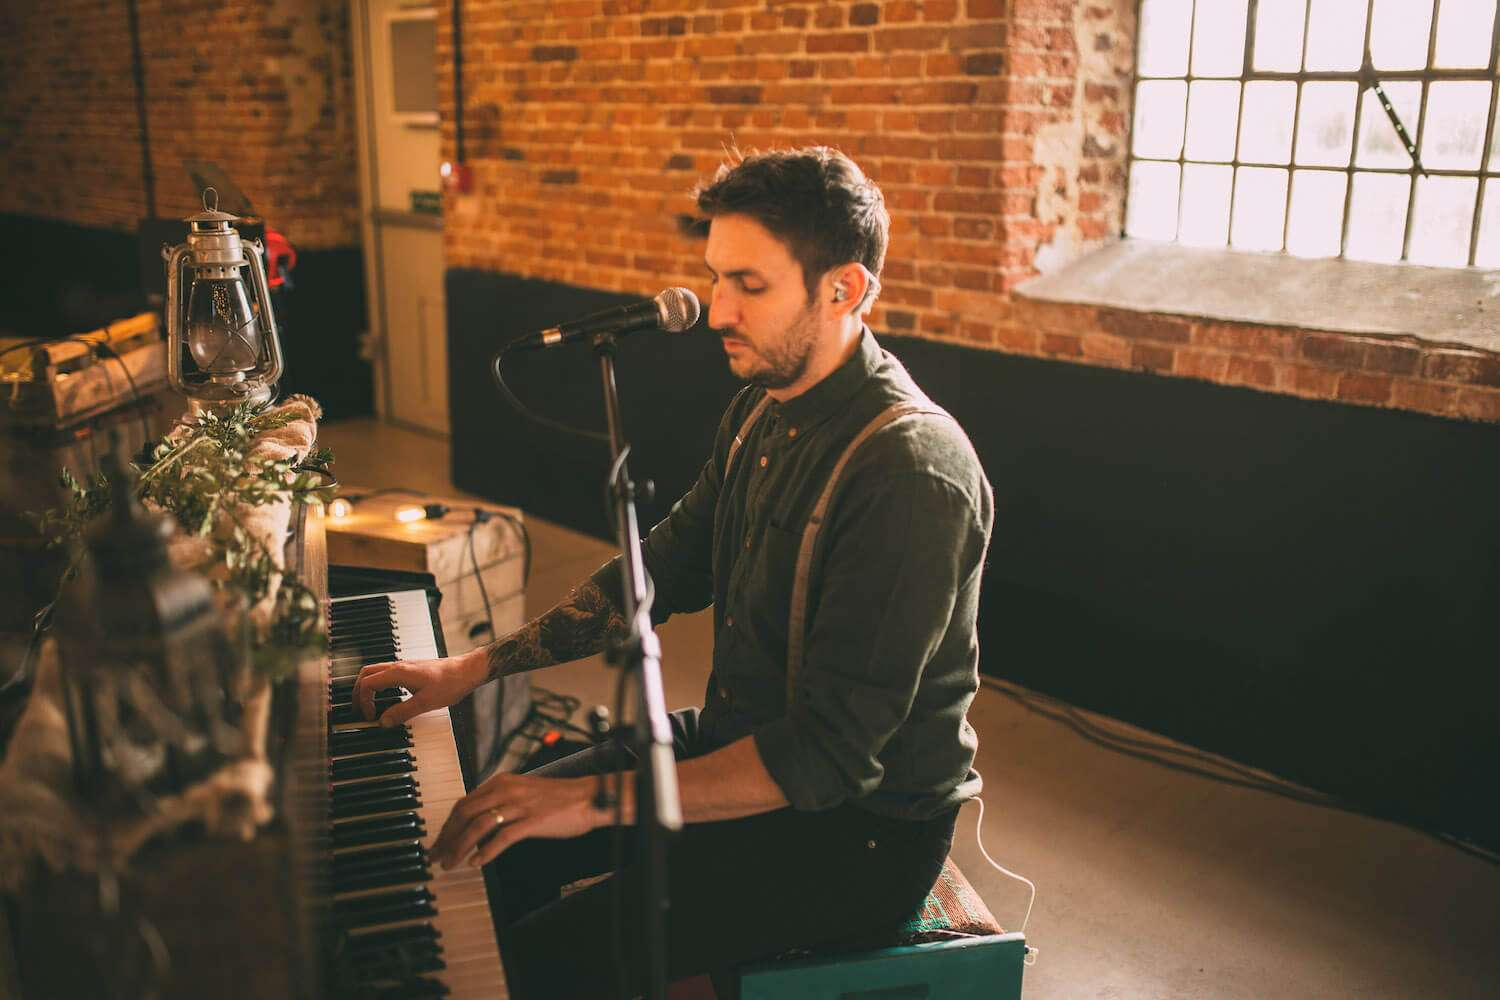 Marc on Piano